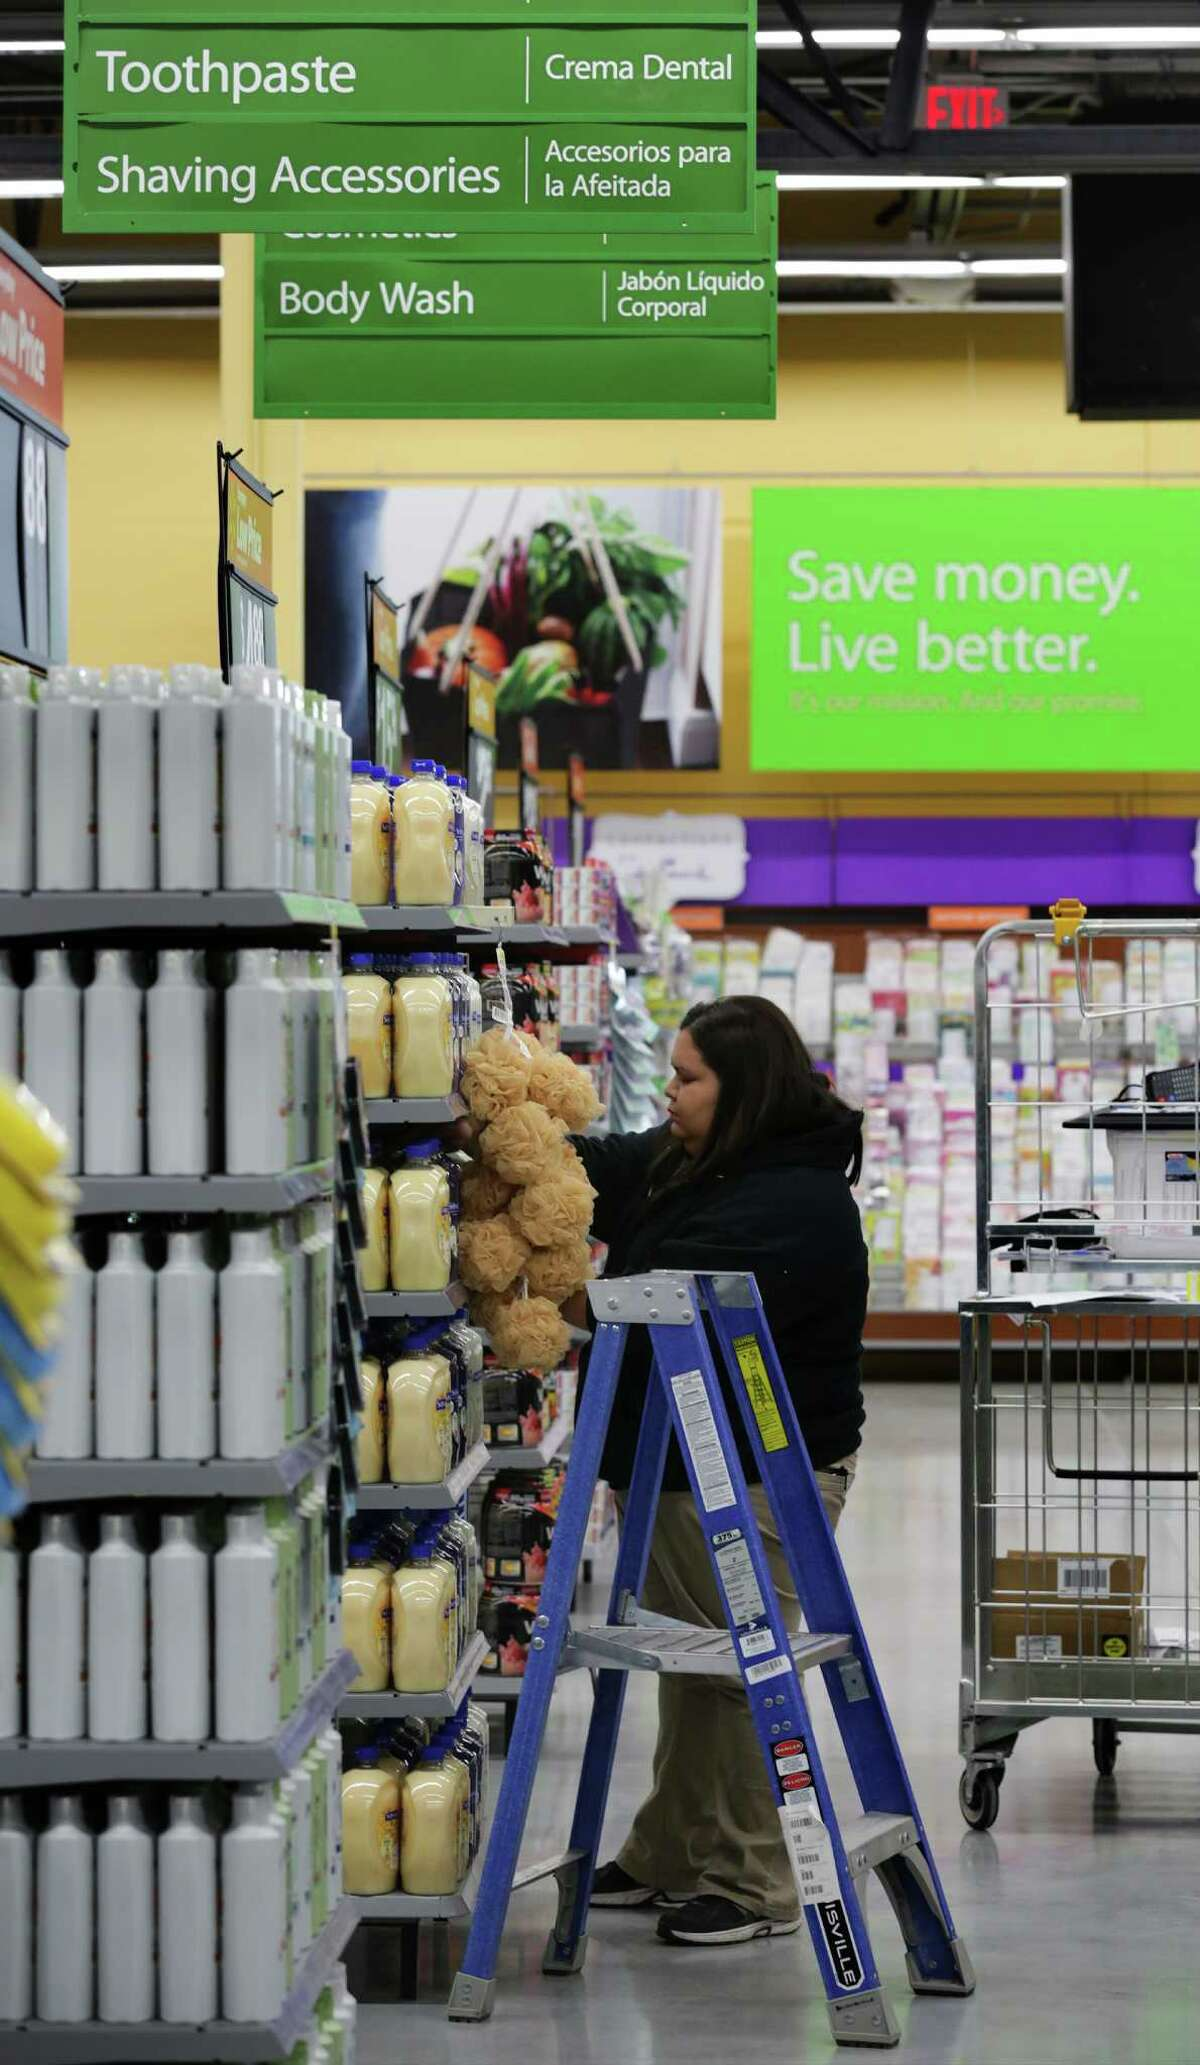 Marcie Terrazas, a cashier at the new Walmart Market, adjusts items on a shelf. Walmart will be opening it's first Neighborhood Market store in San Antonio at the corners of Ellison Dr. and Marbach Rd., which will focus on grocery, pharmacy and some general merchandise items. Thursday, Feb. 27, 2014.